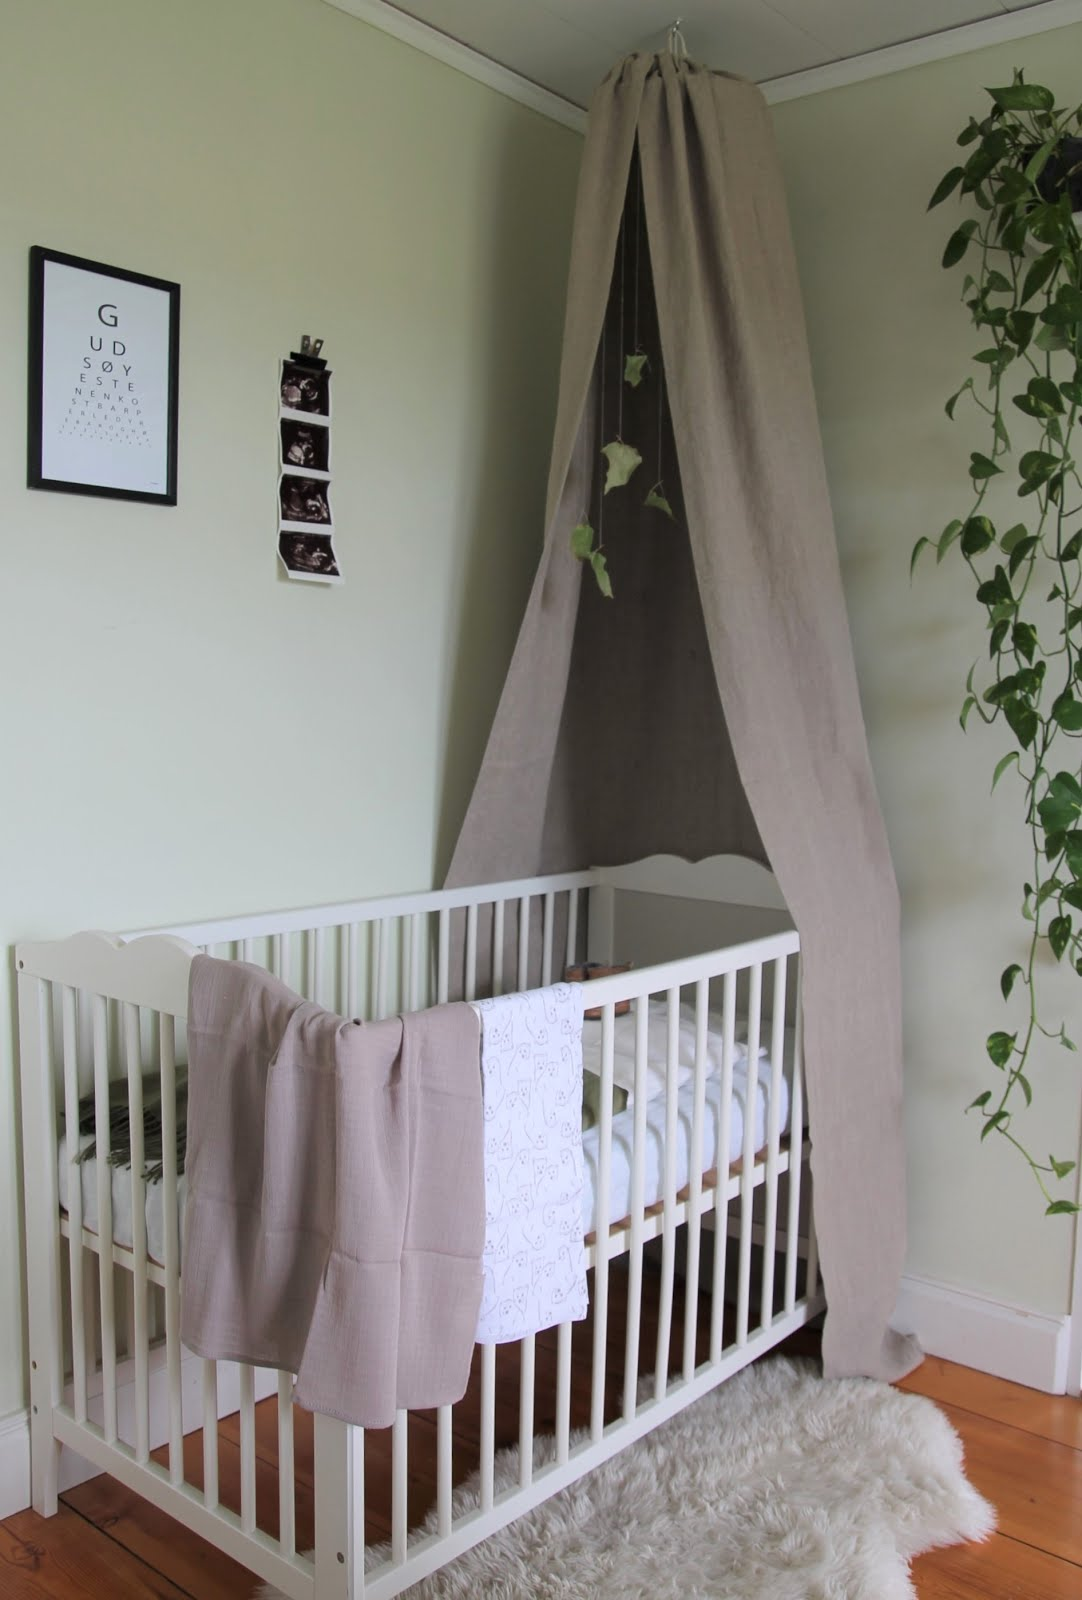 Diy Canopy Crib